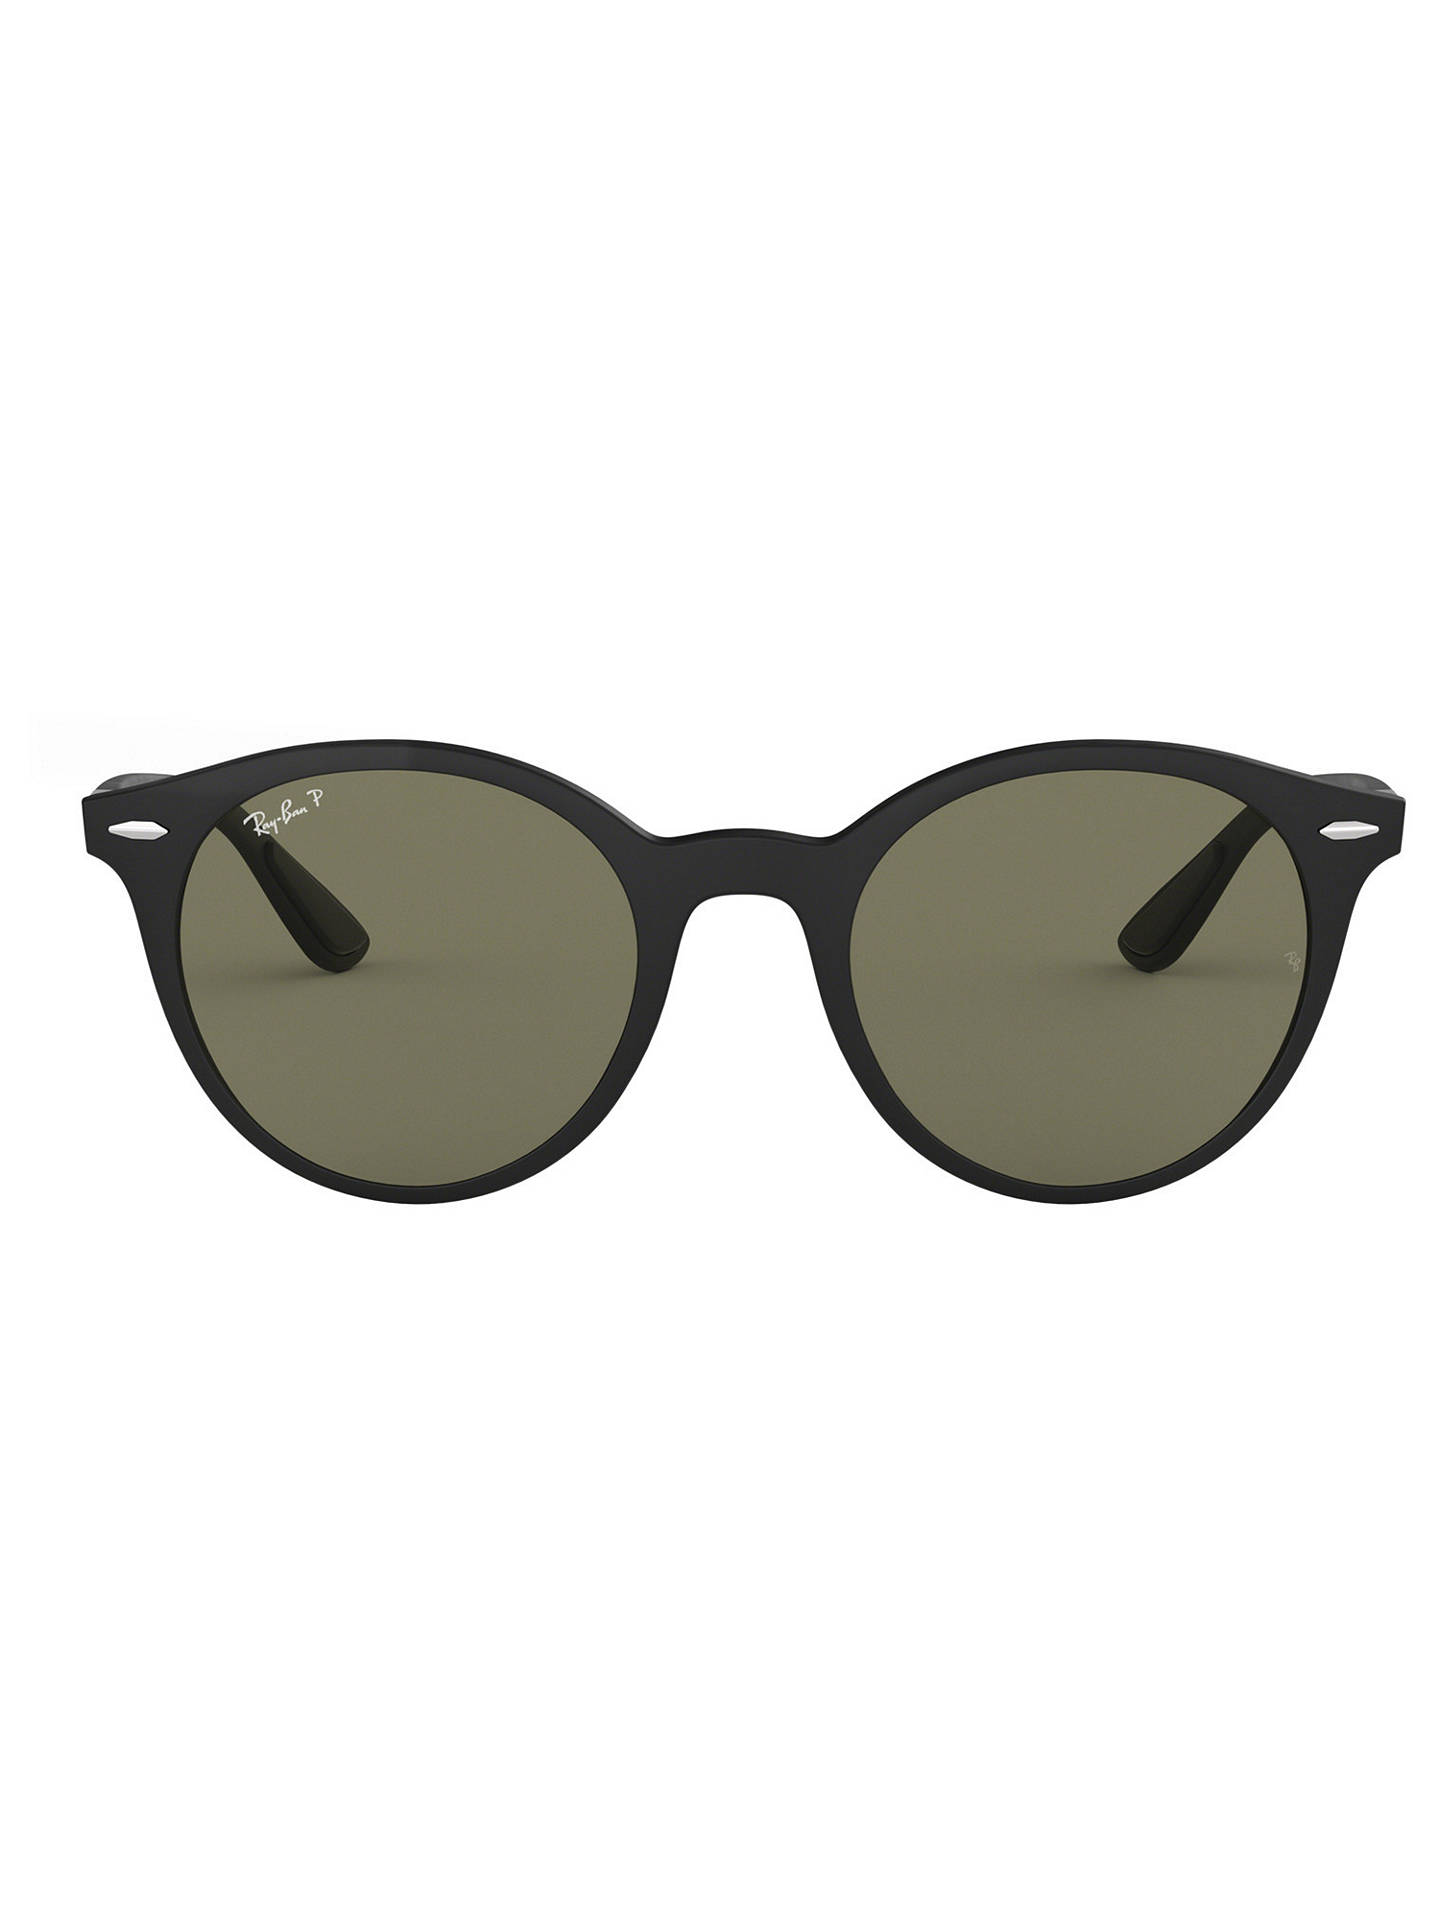 8b63dffb4e Ray-Ban RB4296 Unisex Polarised Oval Sunglasses at John Lewis   Partners